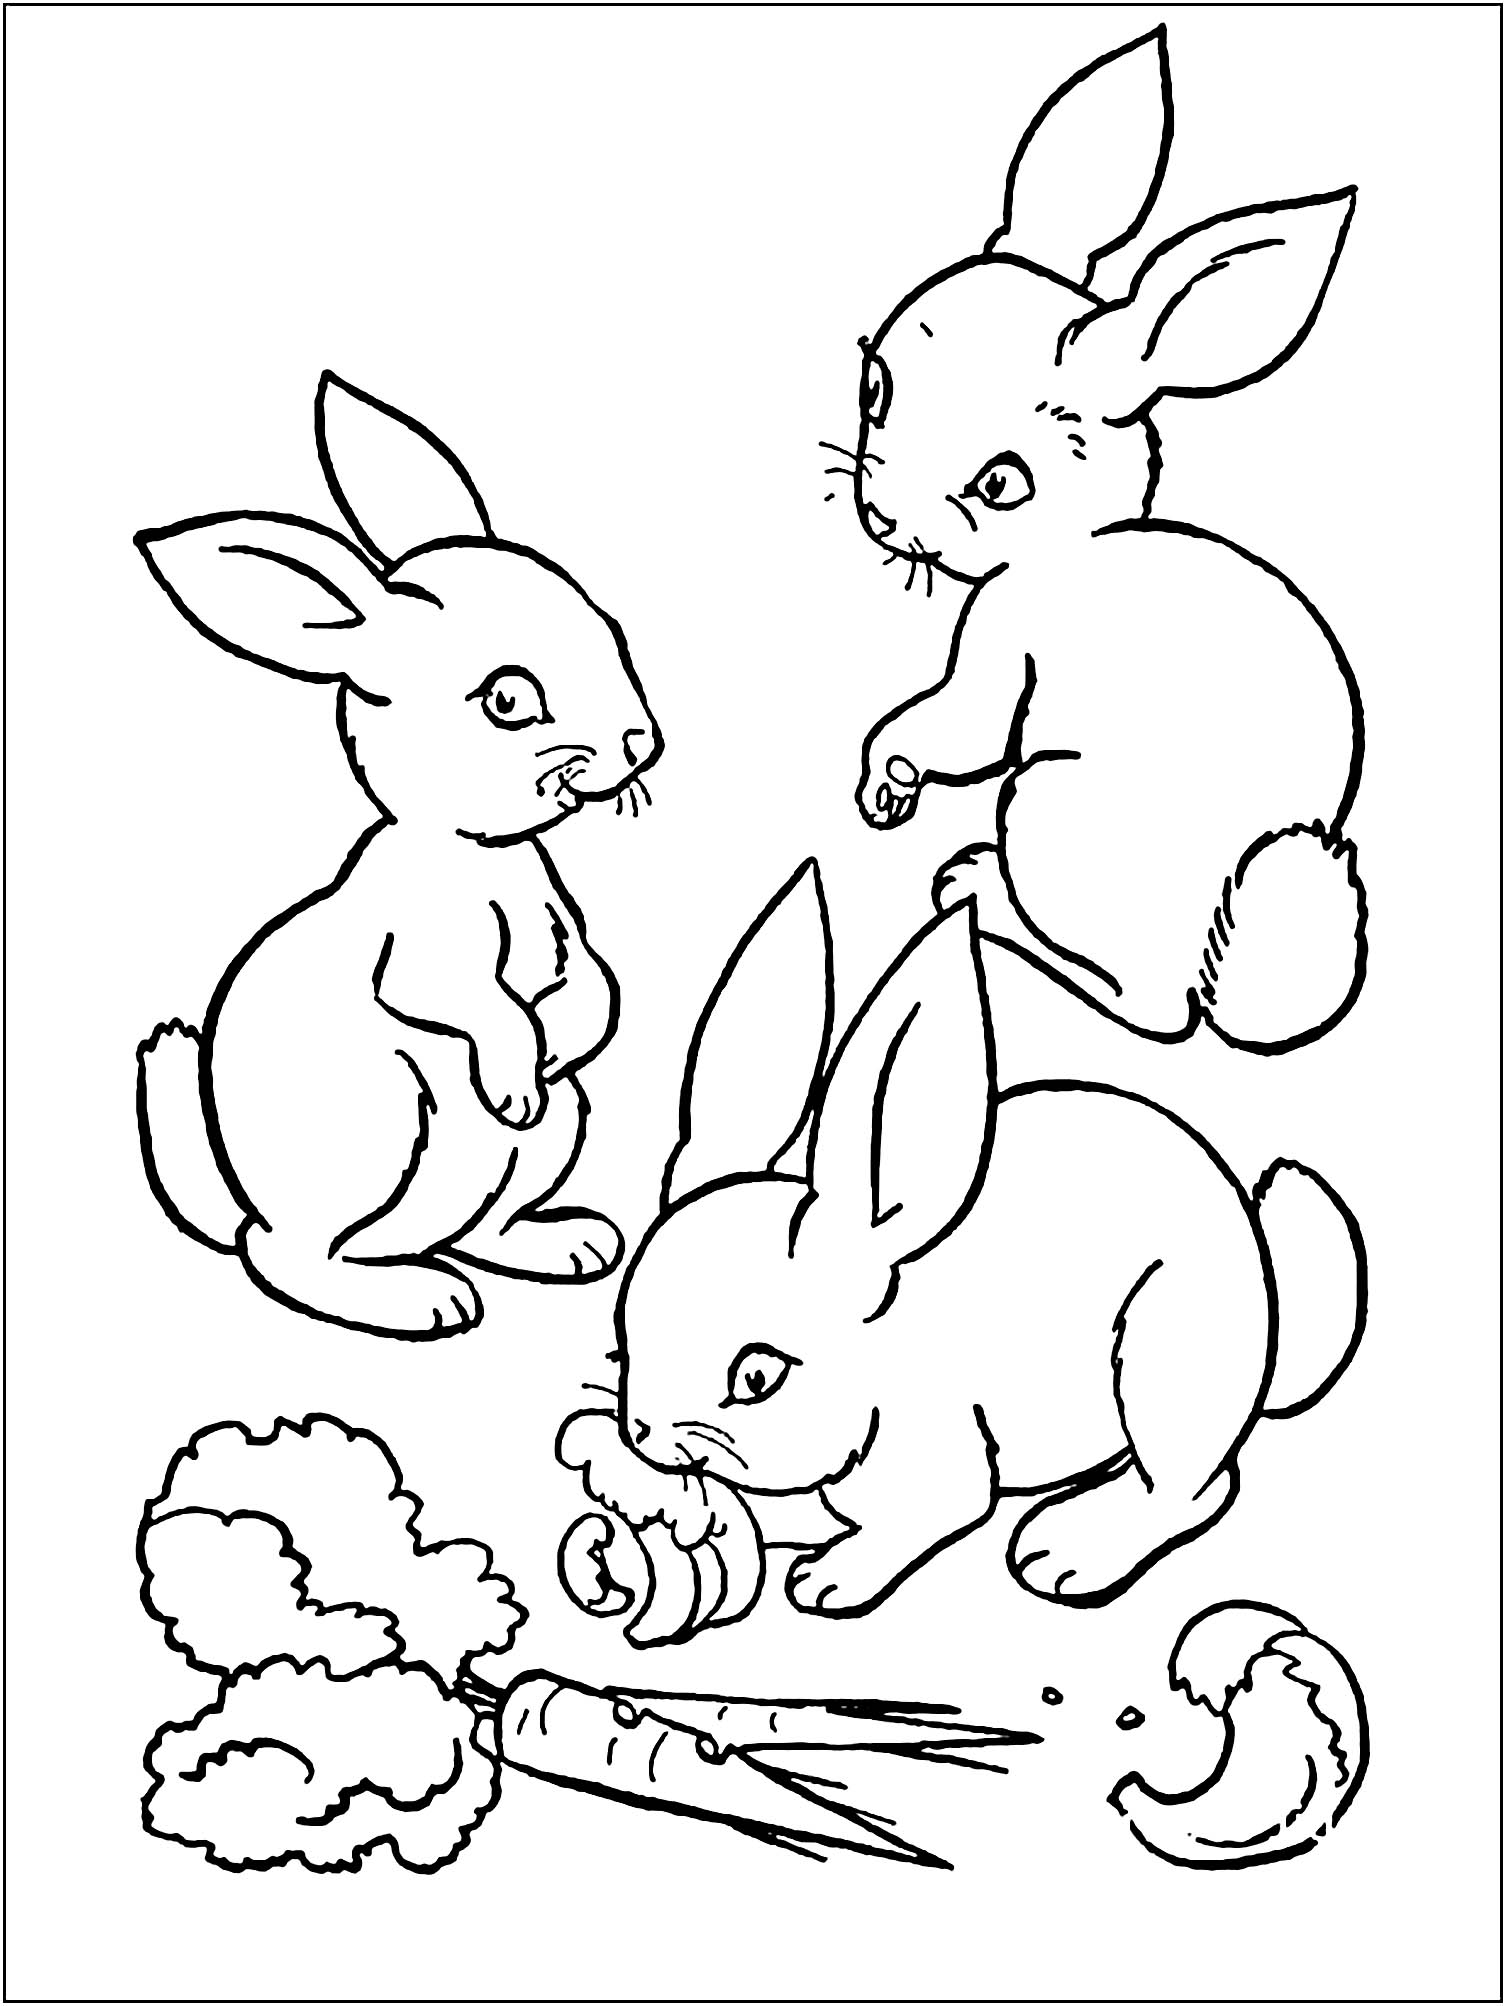 coloring sheets rabbit bunny coloring pages best coloring pages for kids rabbit coloring sheets